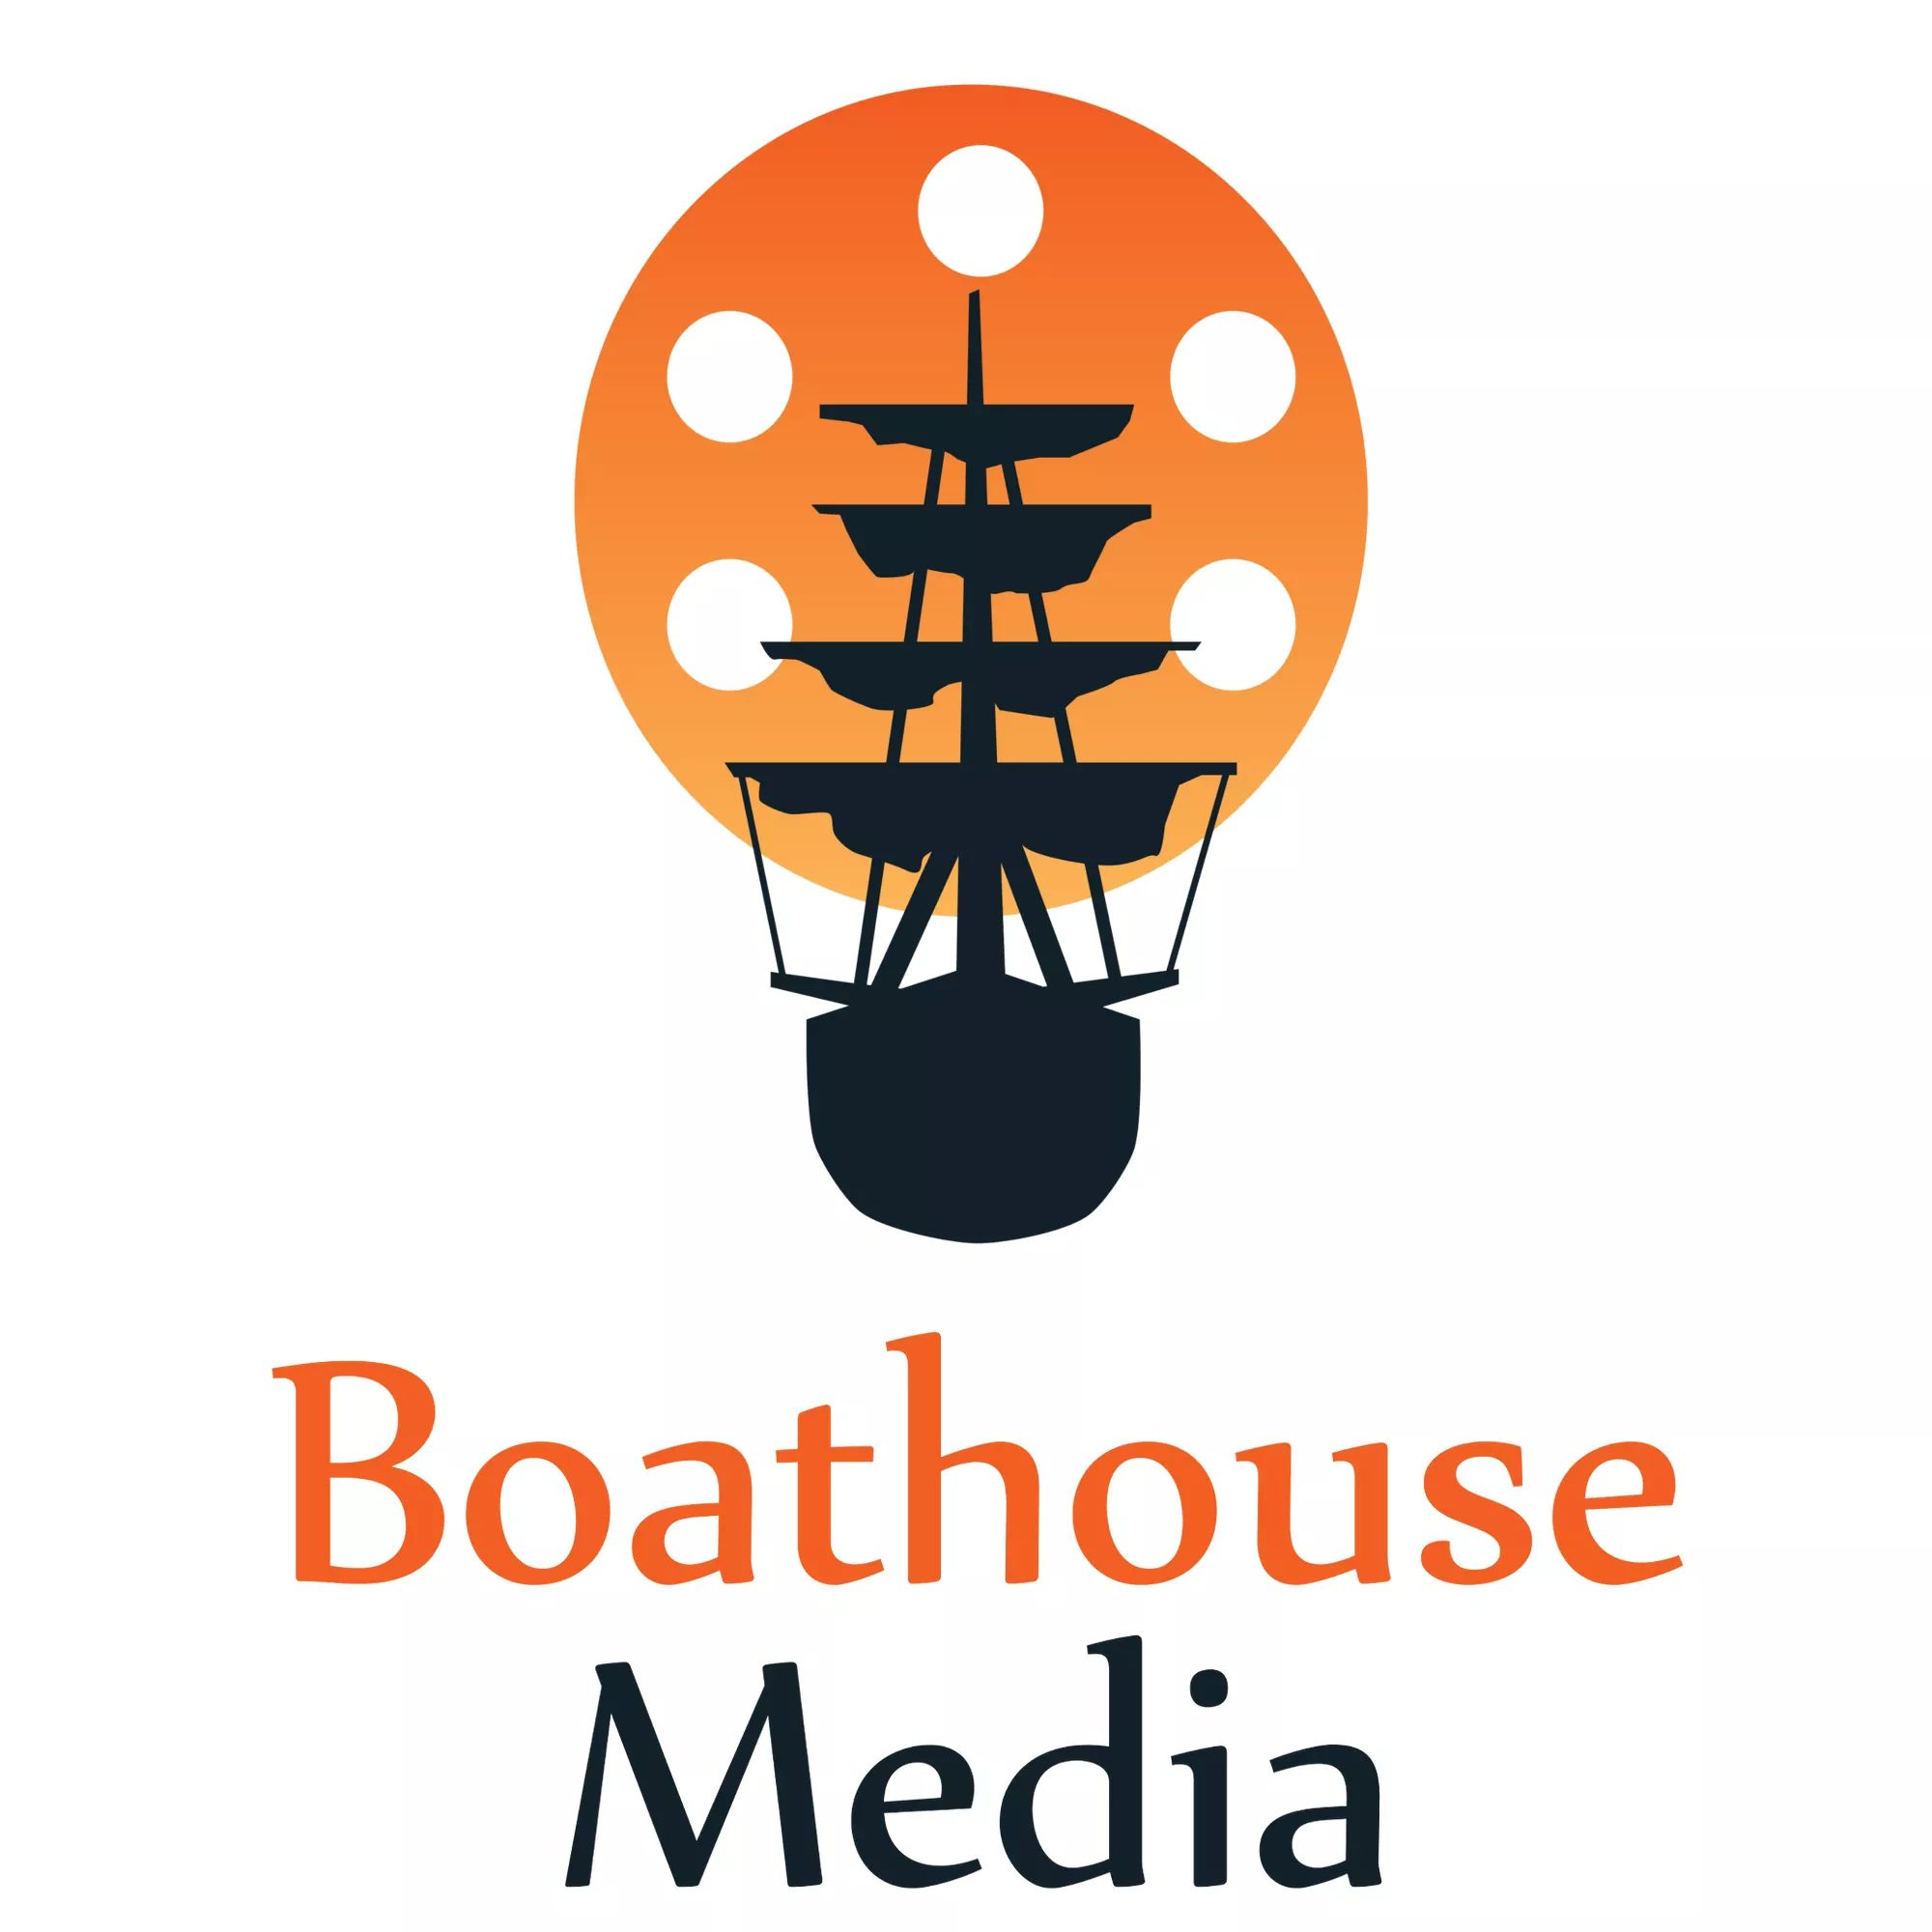 Boathouse Media Jobs in India